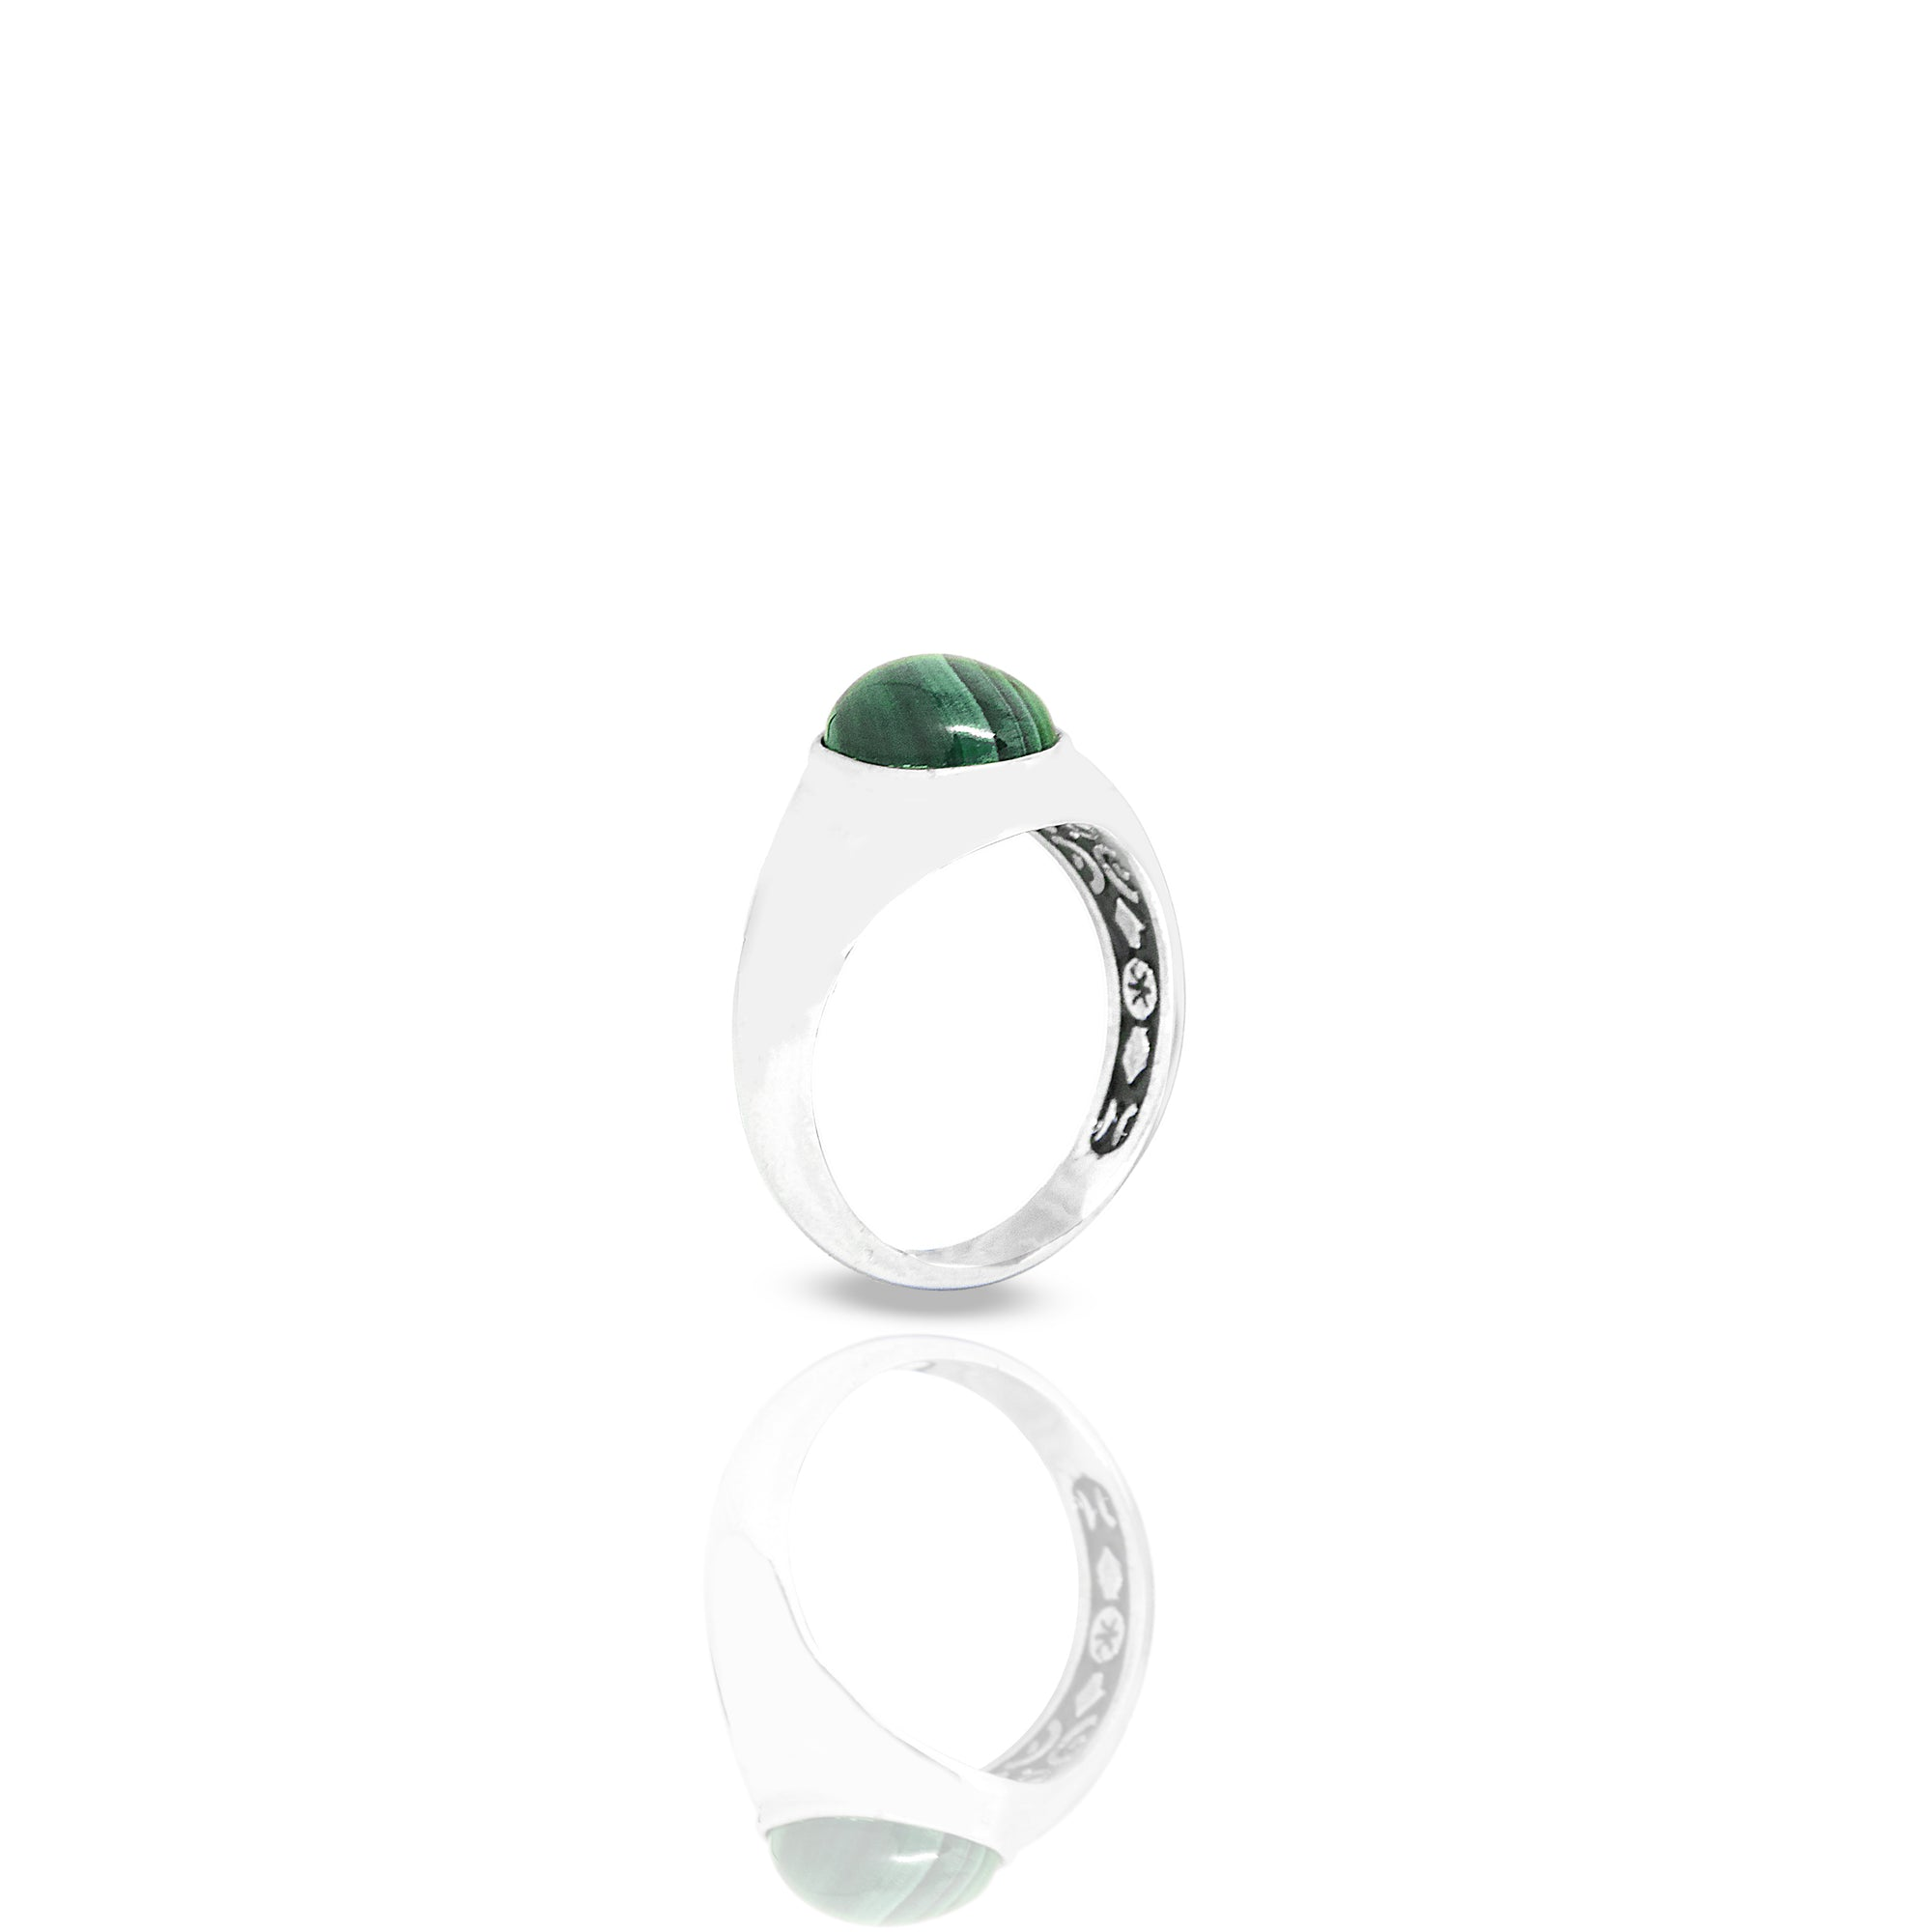 Inner Signet Ring With Oval Malachite